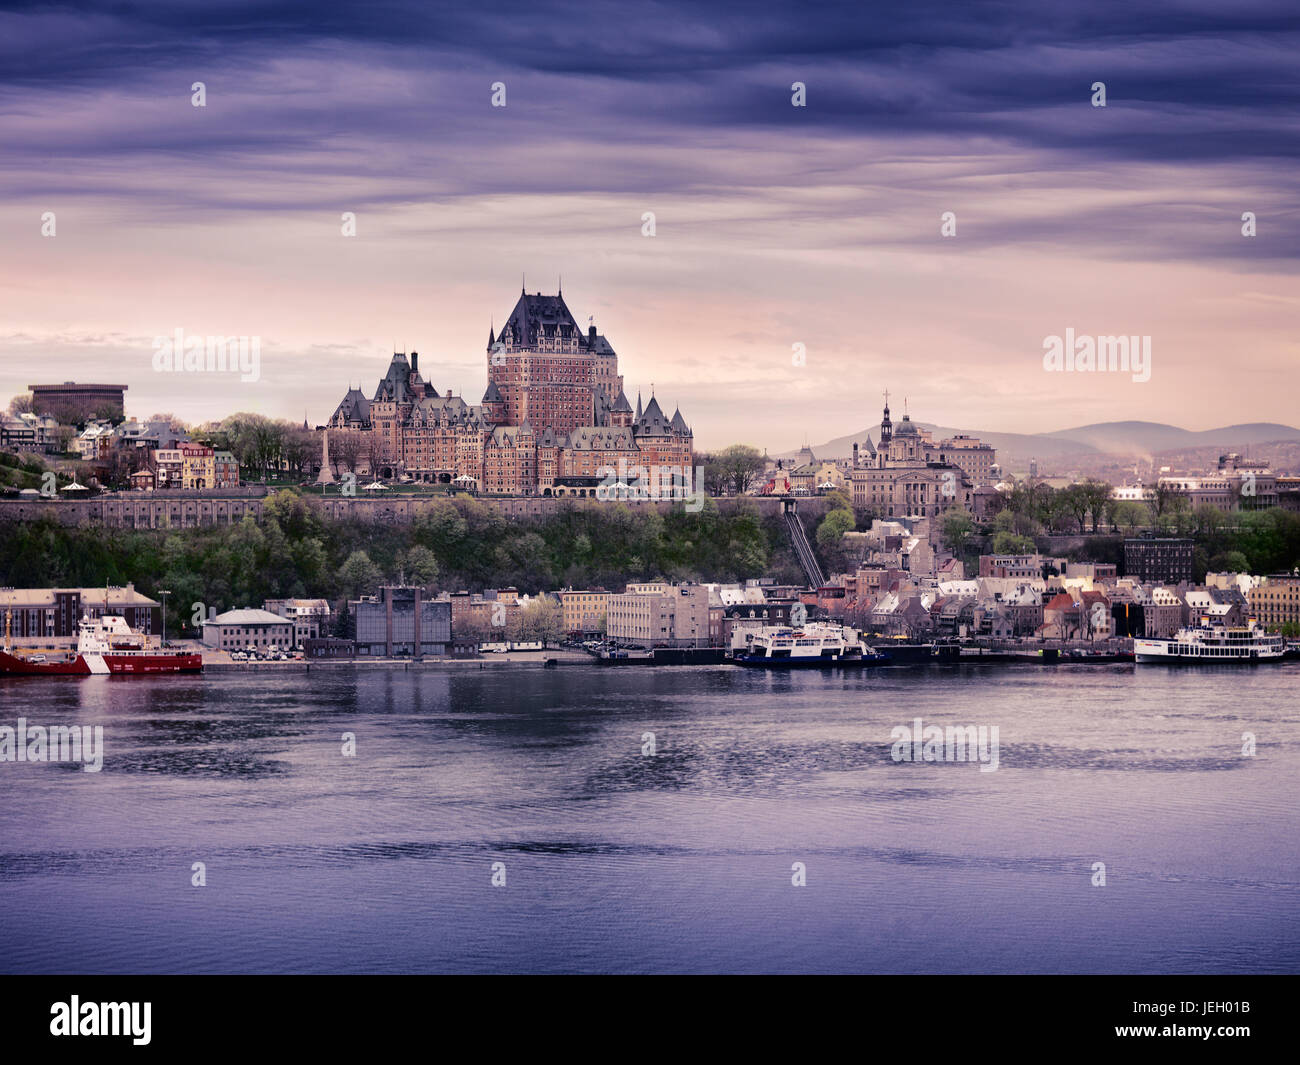 Old Quebec City and port skyline at dusk with Château Frontenac, view over the St. Lawrence river, Quebec, - Stock Image